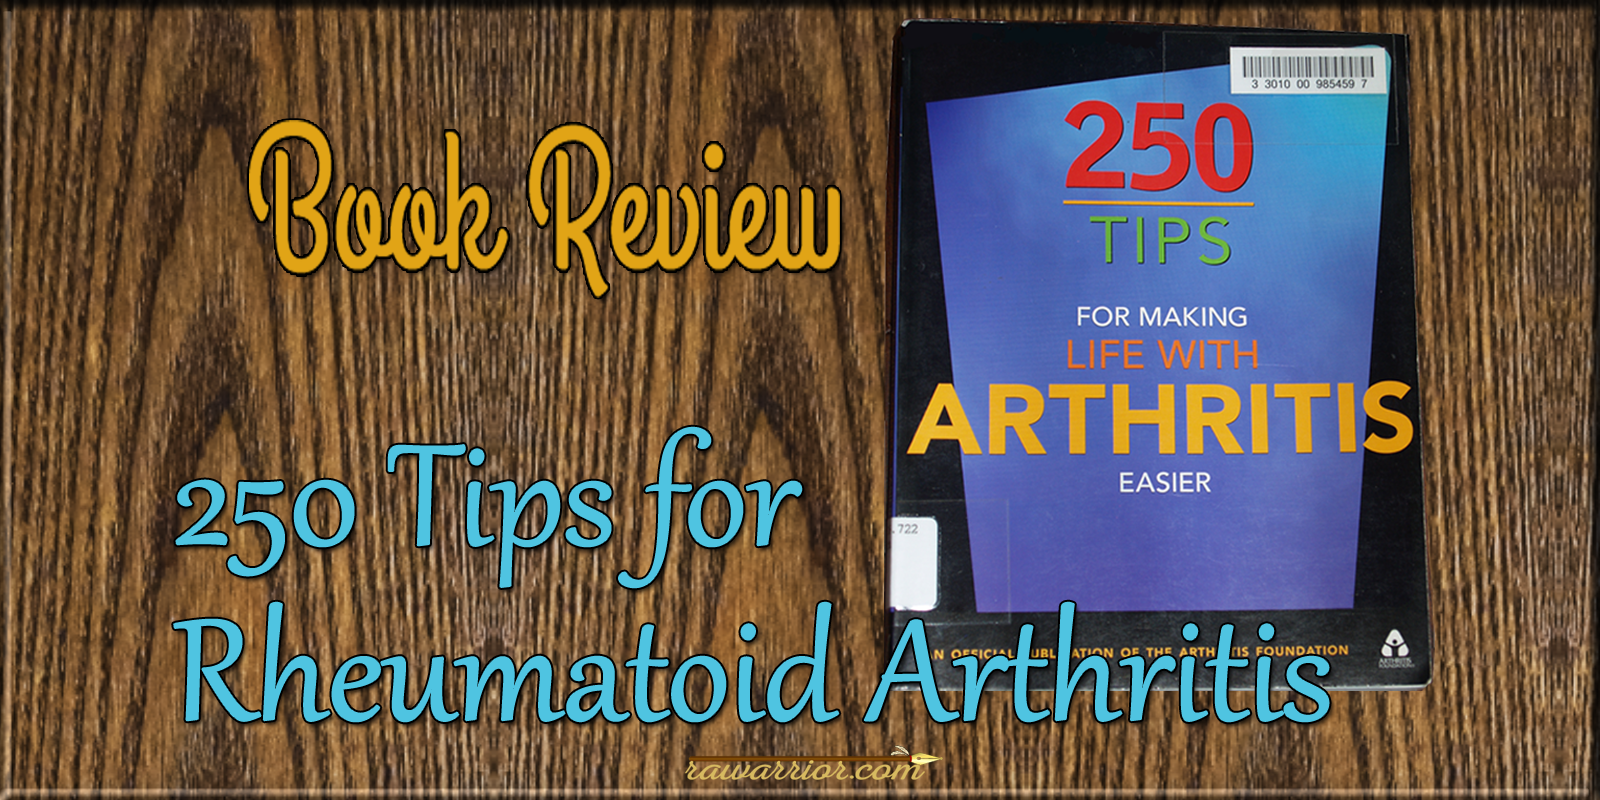 Rheumatoid Arthritis Tips Book review